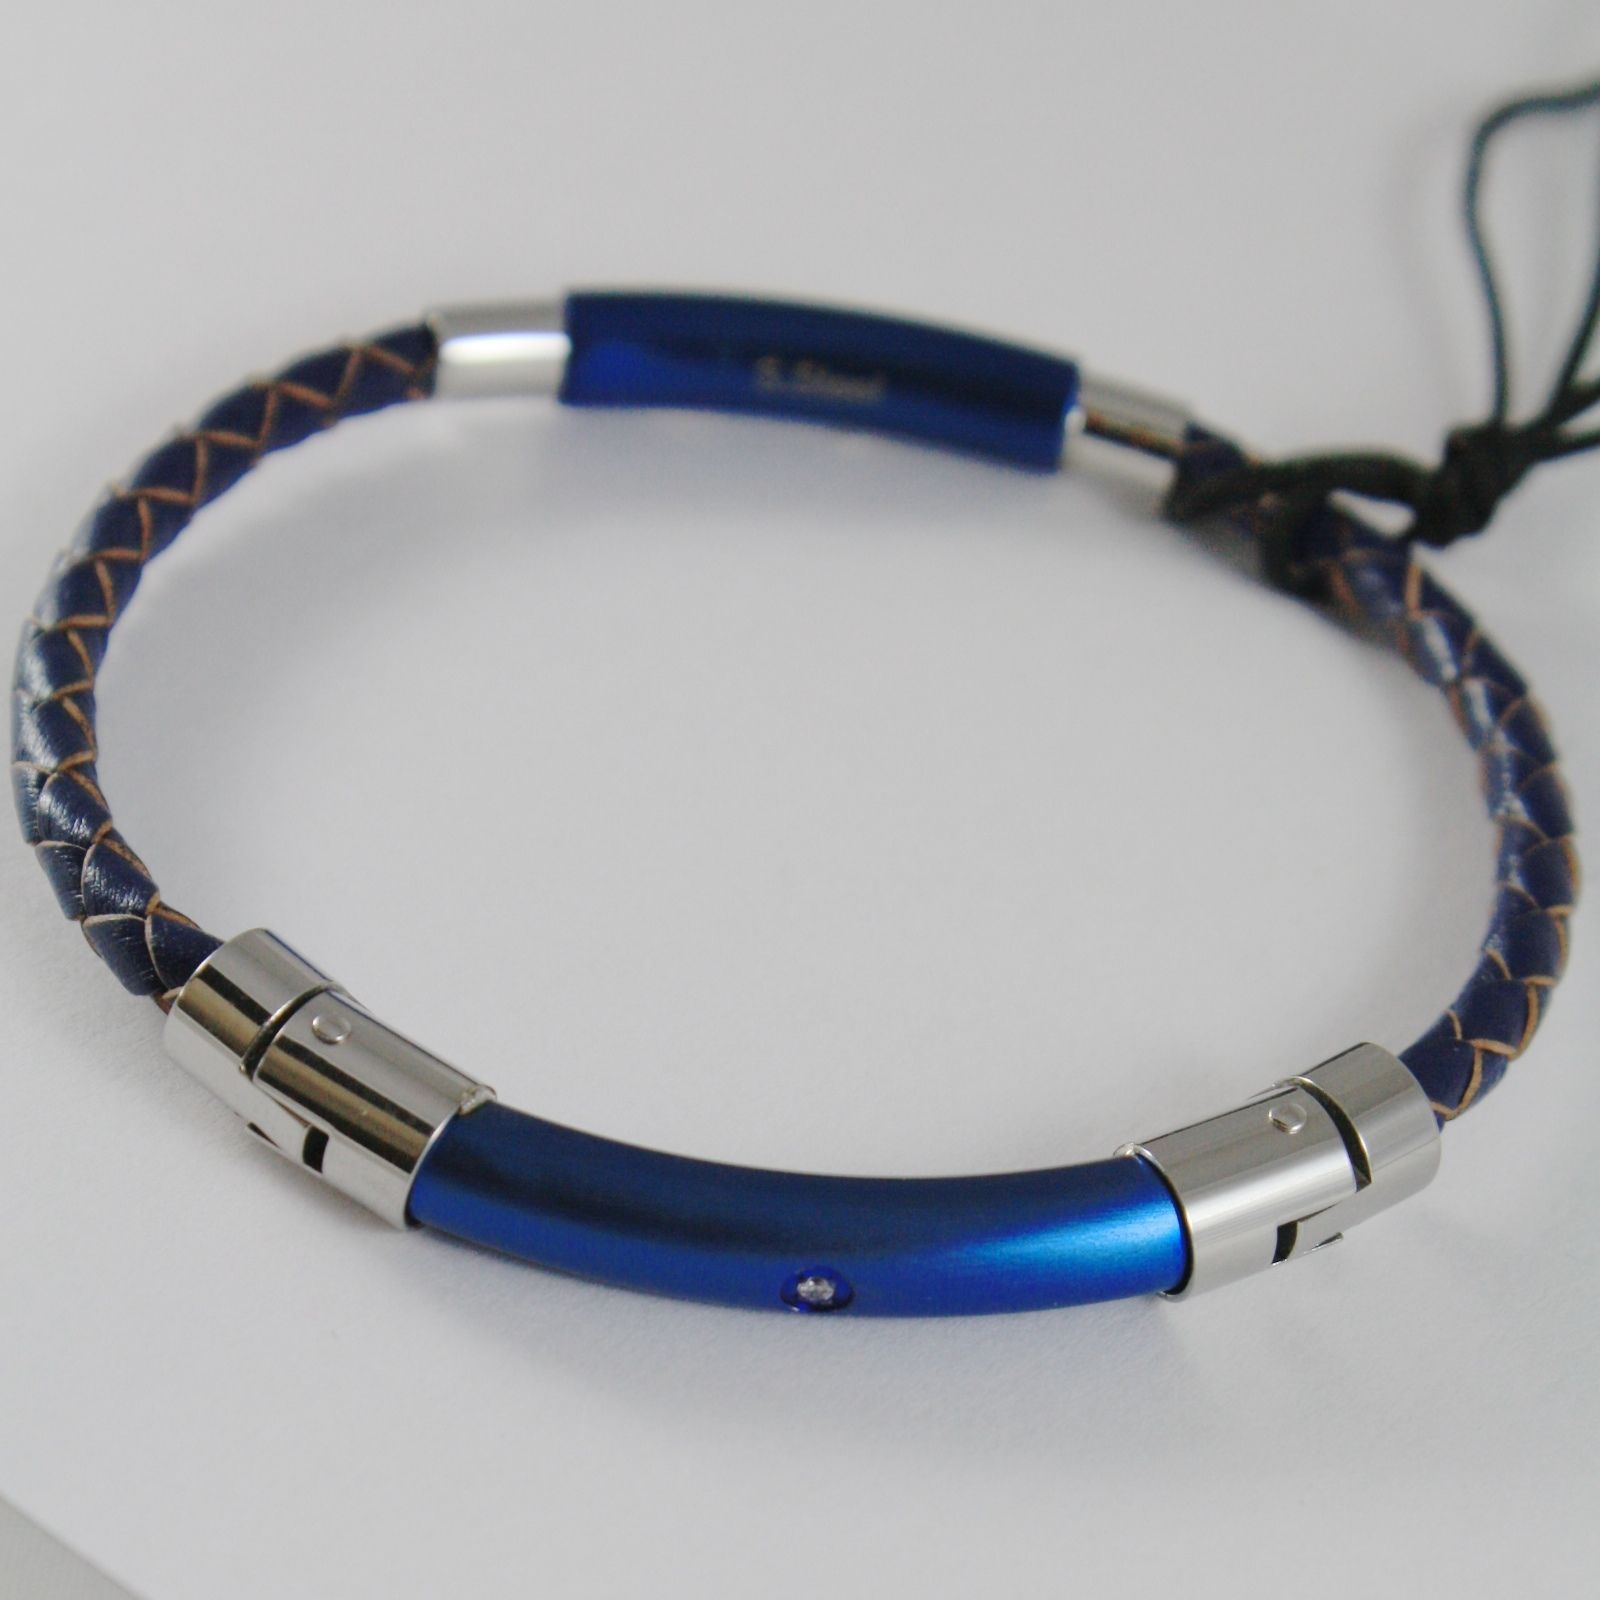 STAINLESS STEEL BLUE BRACELET TUBE PLATE & LEATHER ROPE 4US BY CESARE PACIOTTI